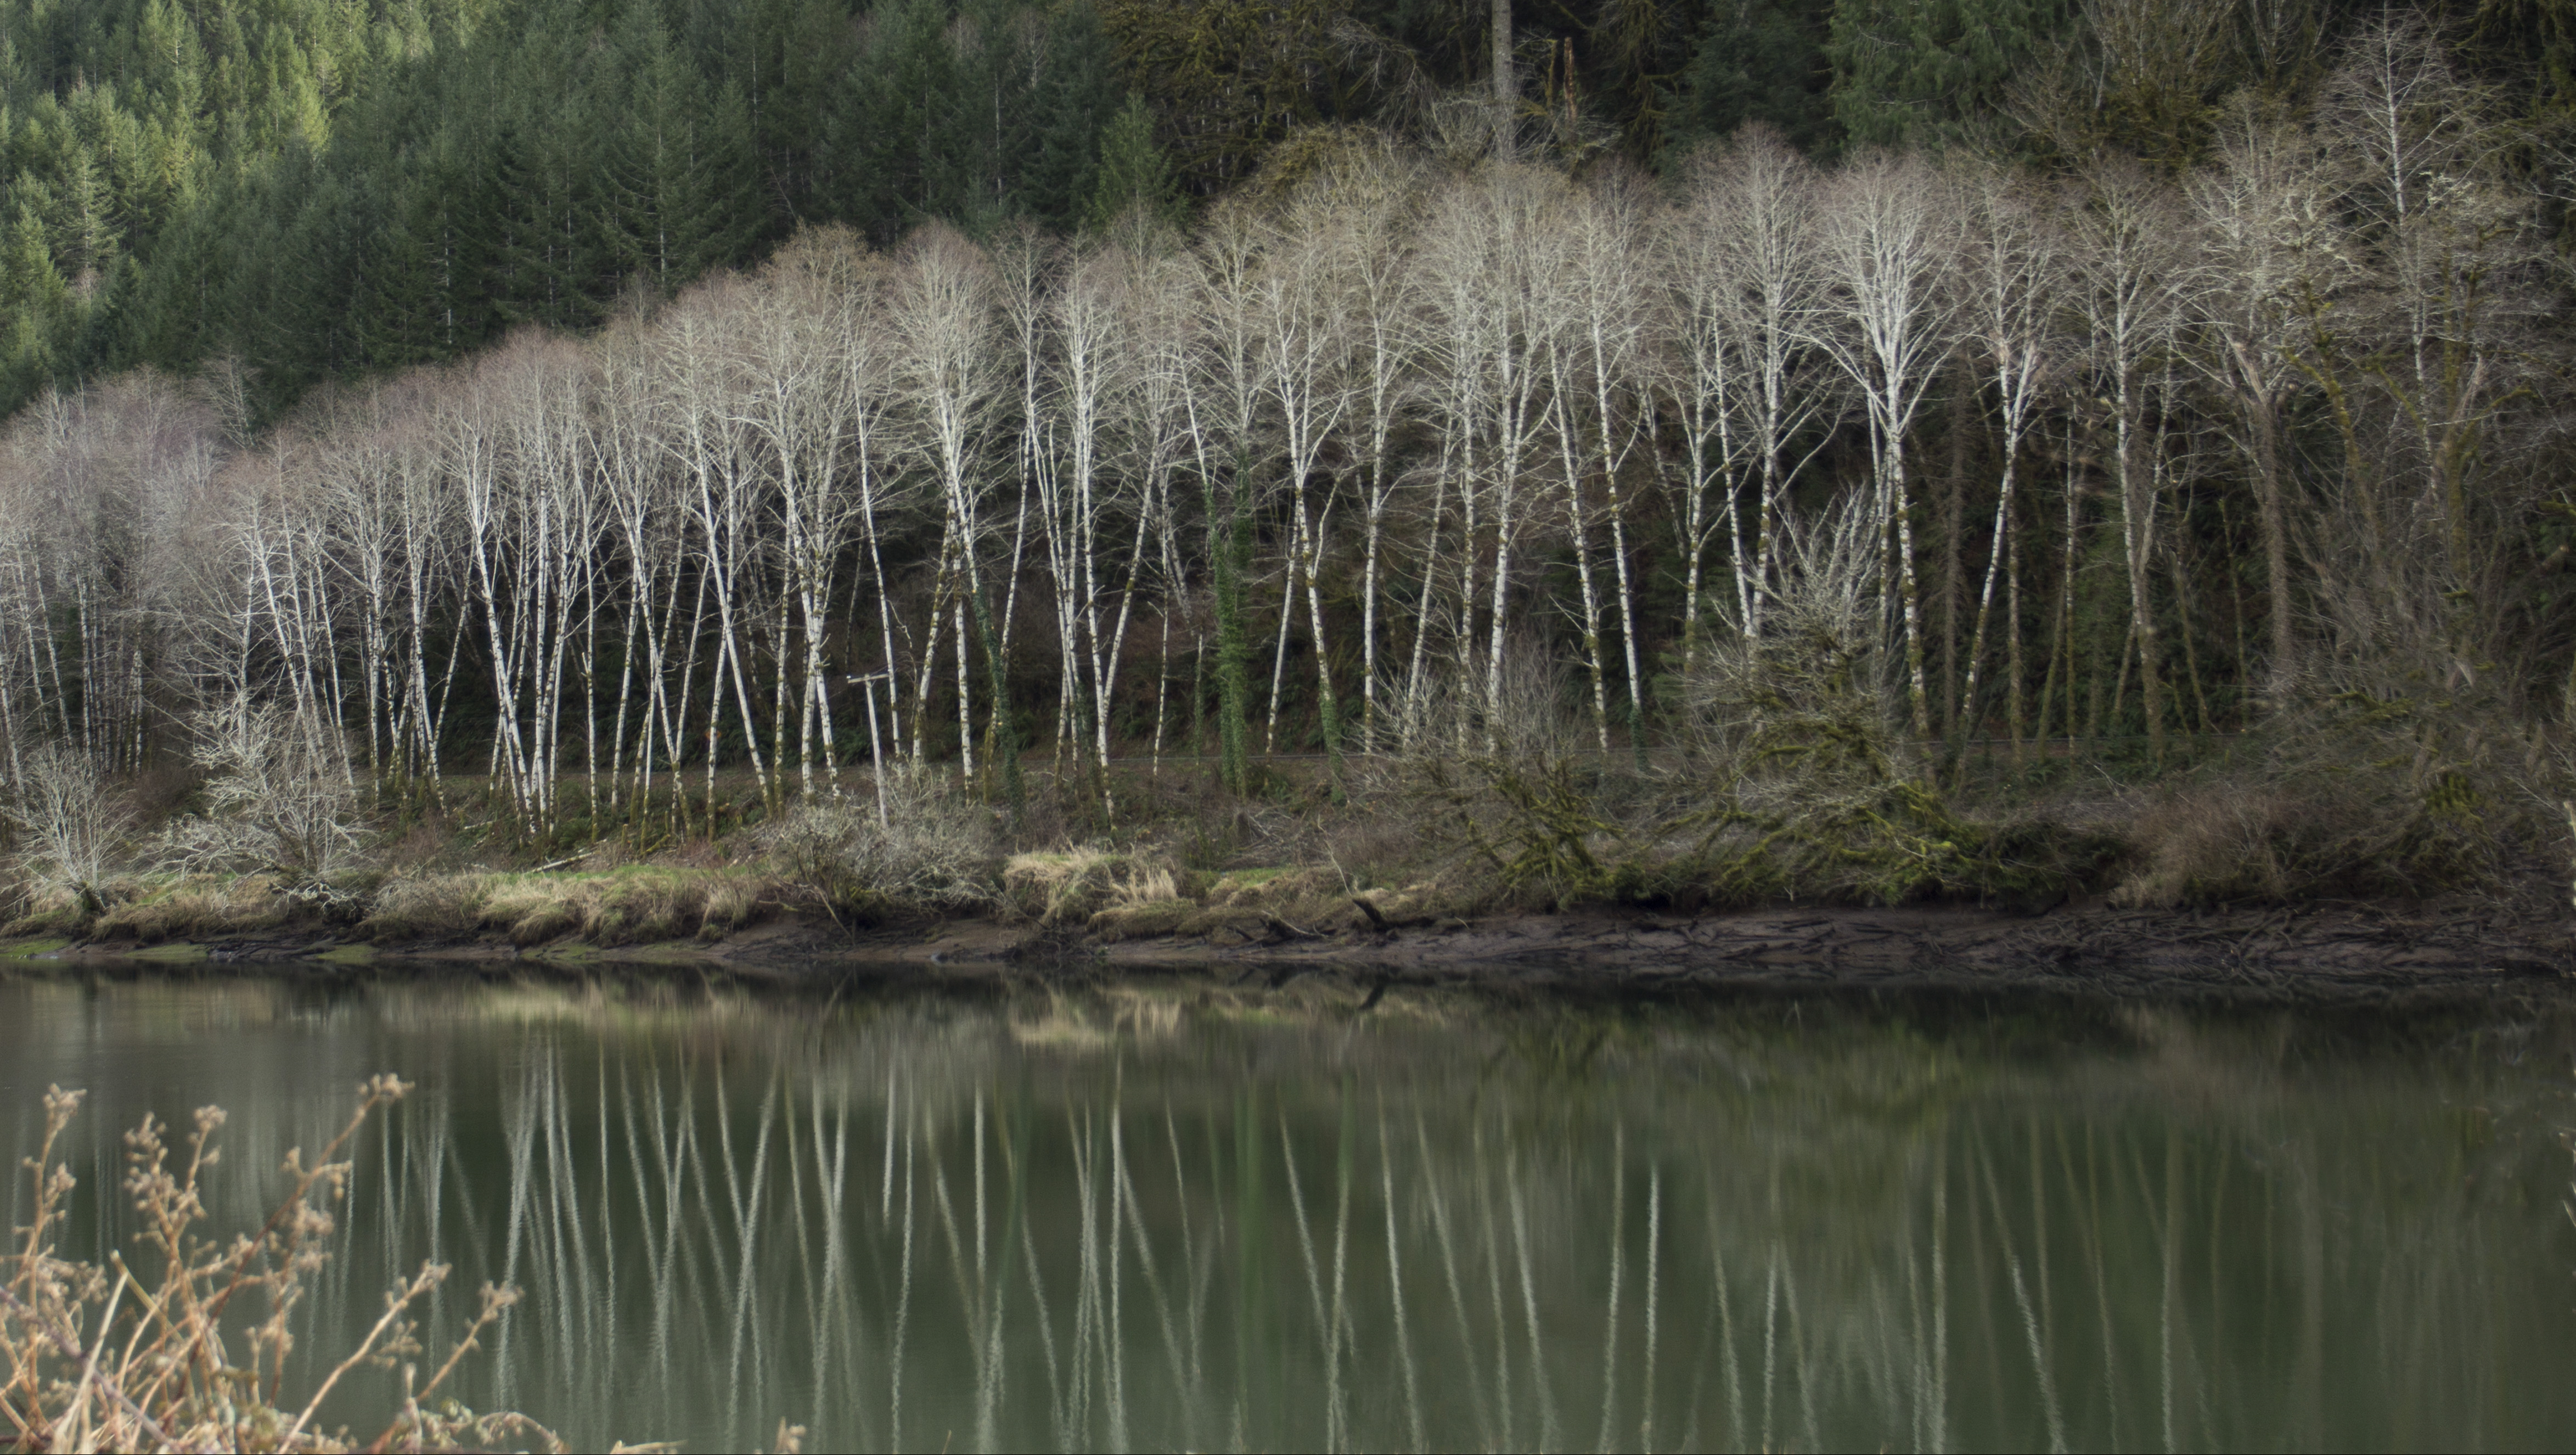 Tree reflection on siuslaw river, oregon photo